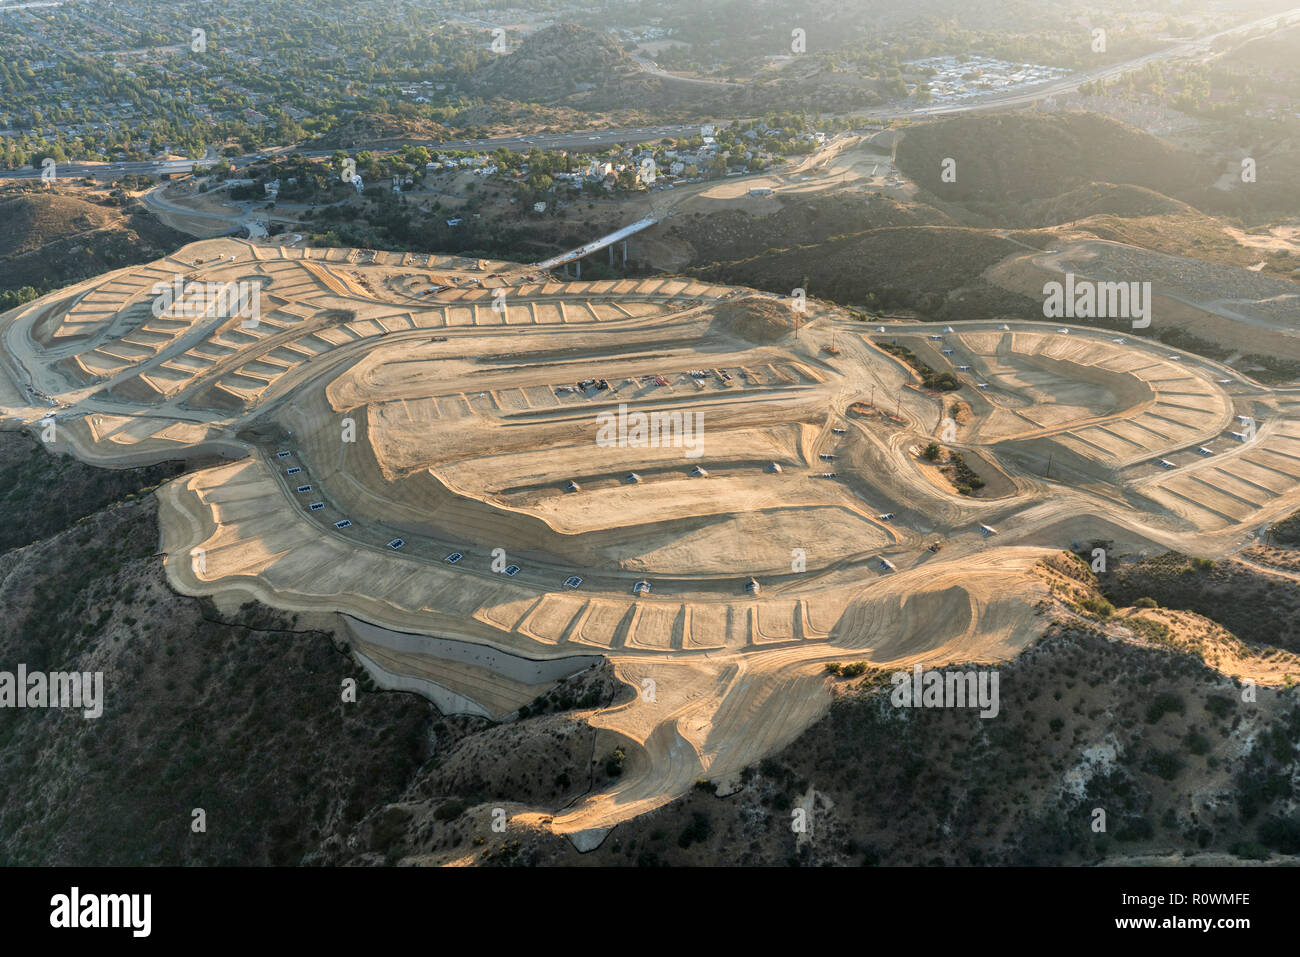 Aerial view of hilltop construction grading above the San Fernando Valley in Los Angeles, California. - Stock Image